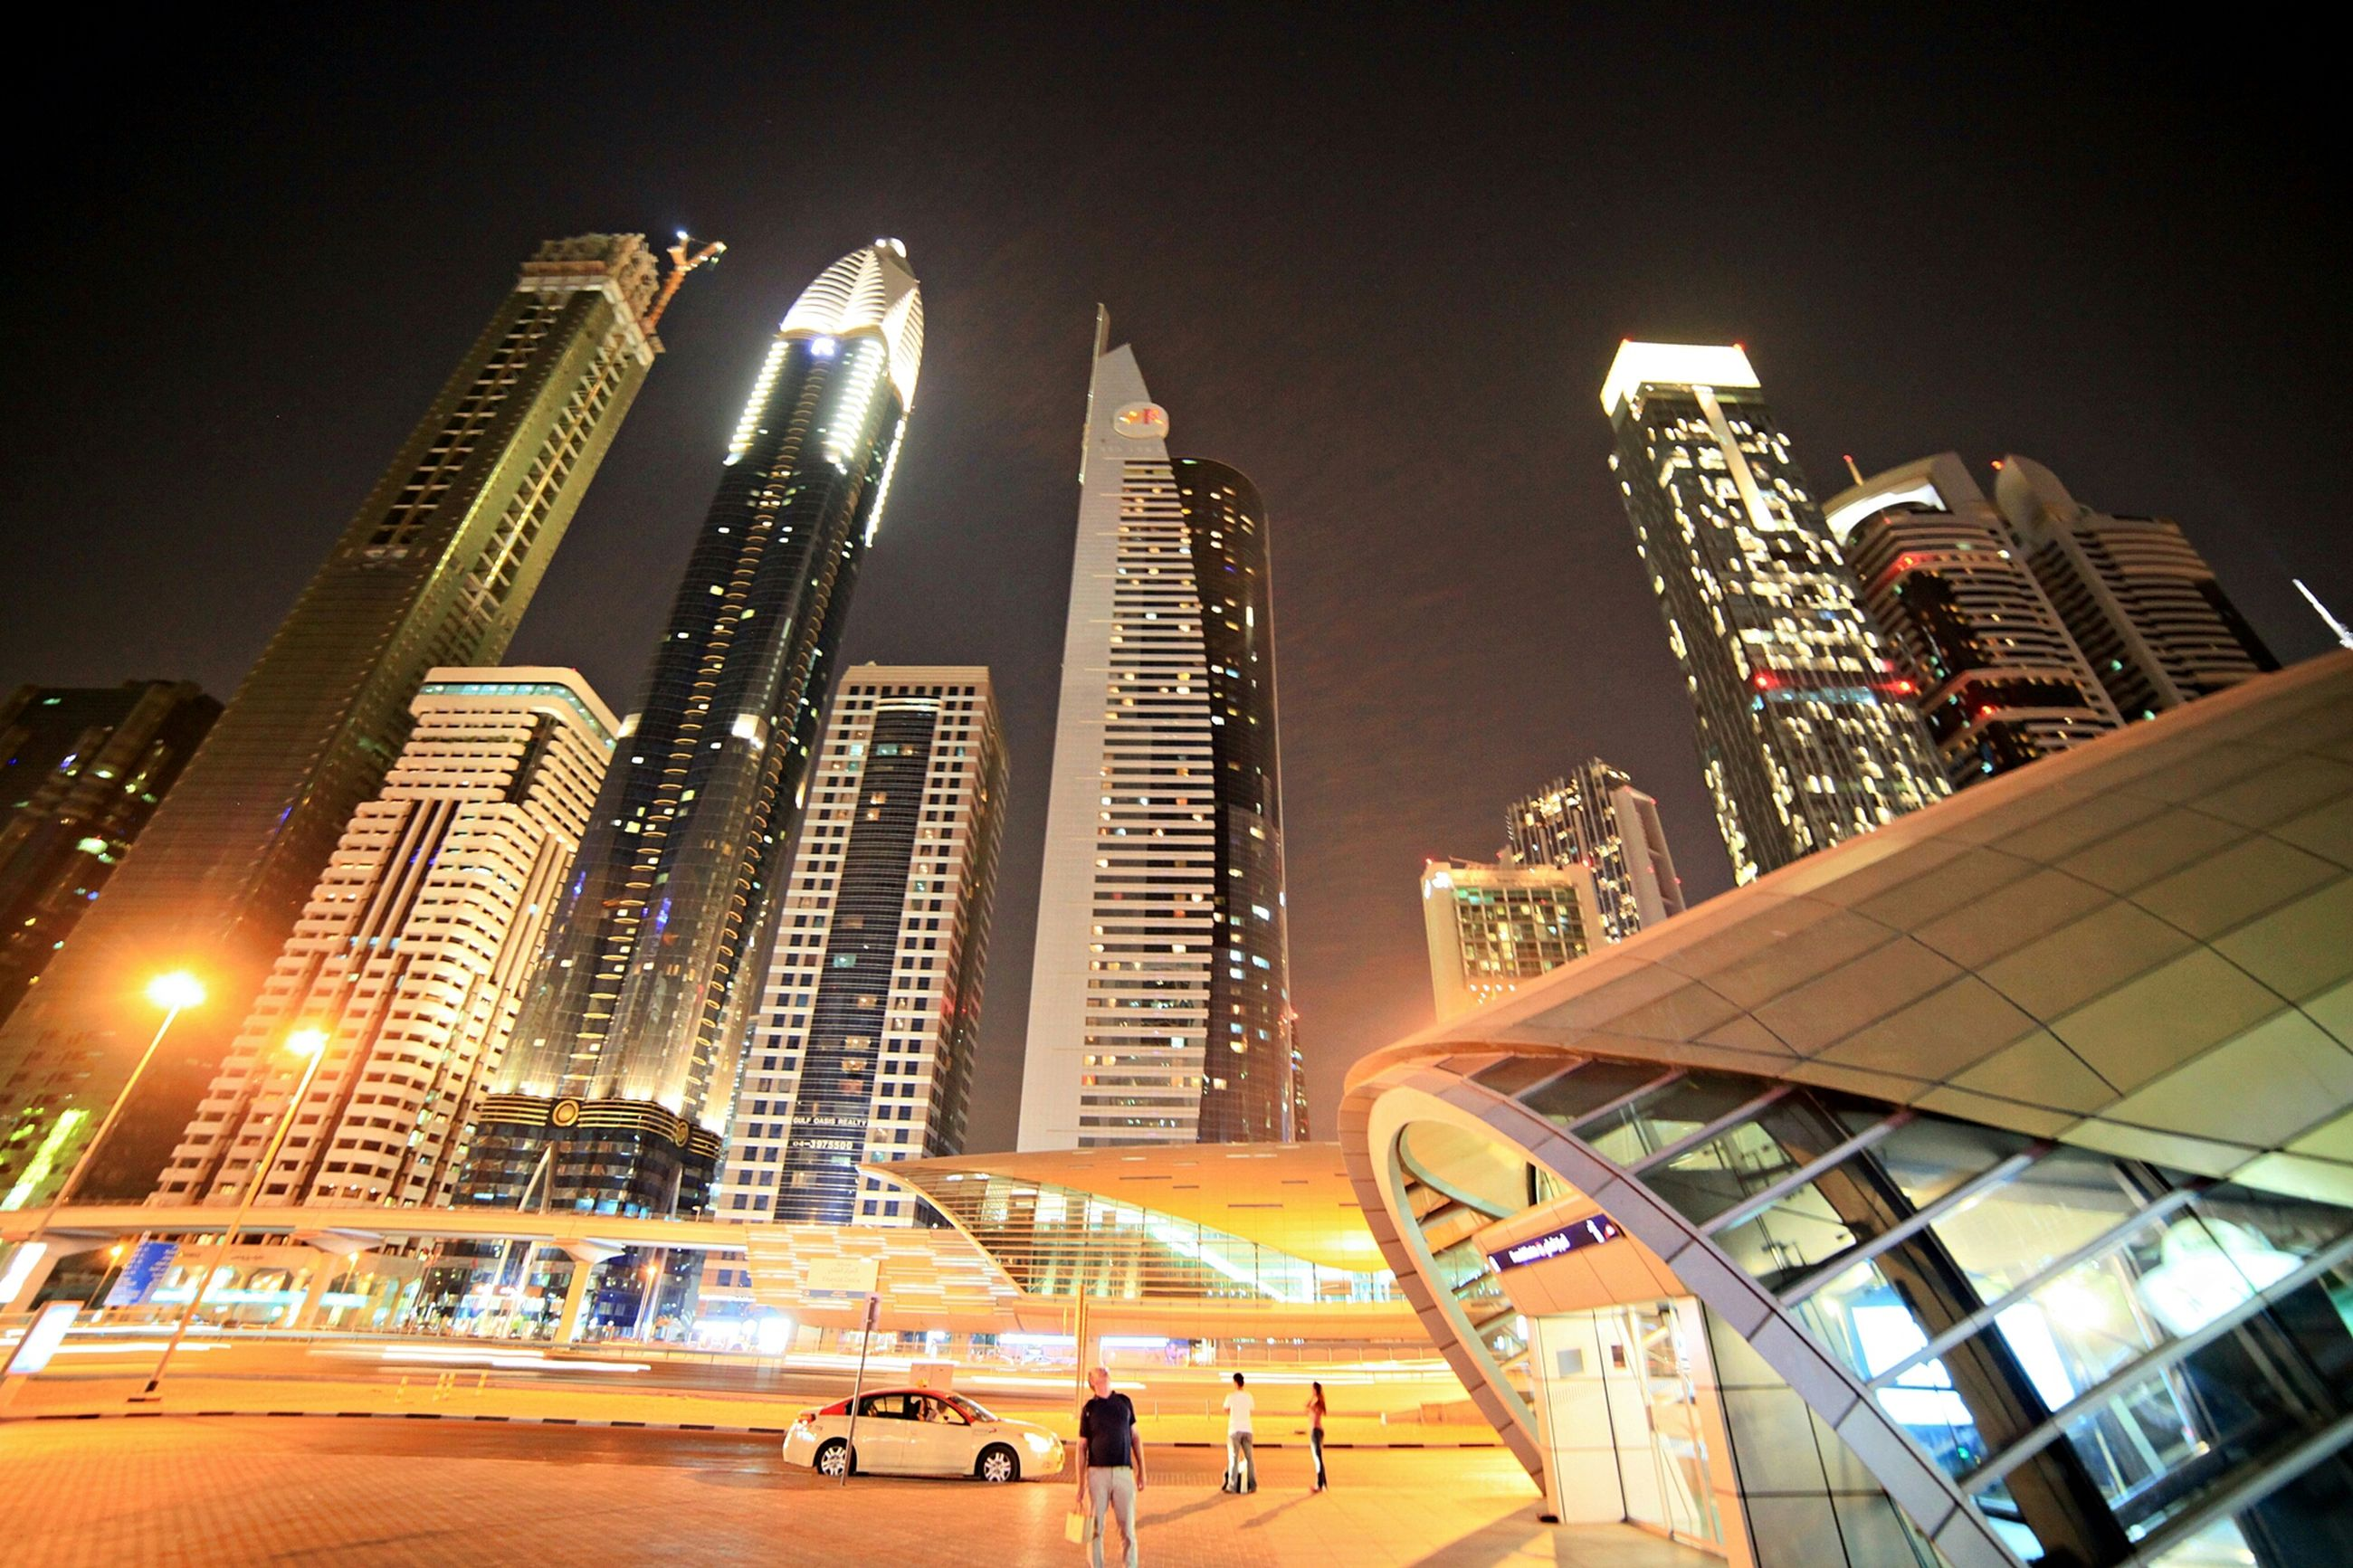 building exterior, architecture, skyscraper, built structure, city, modern, tall - high, office building, tower, illuminated, capital cities, financial district, city life, night, urban skyline, low angle view, travel destinations, cityscape, building, downtown district